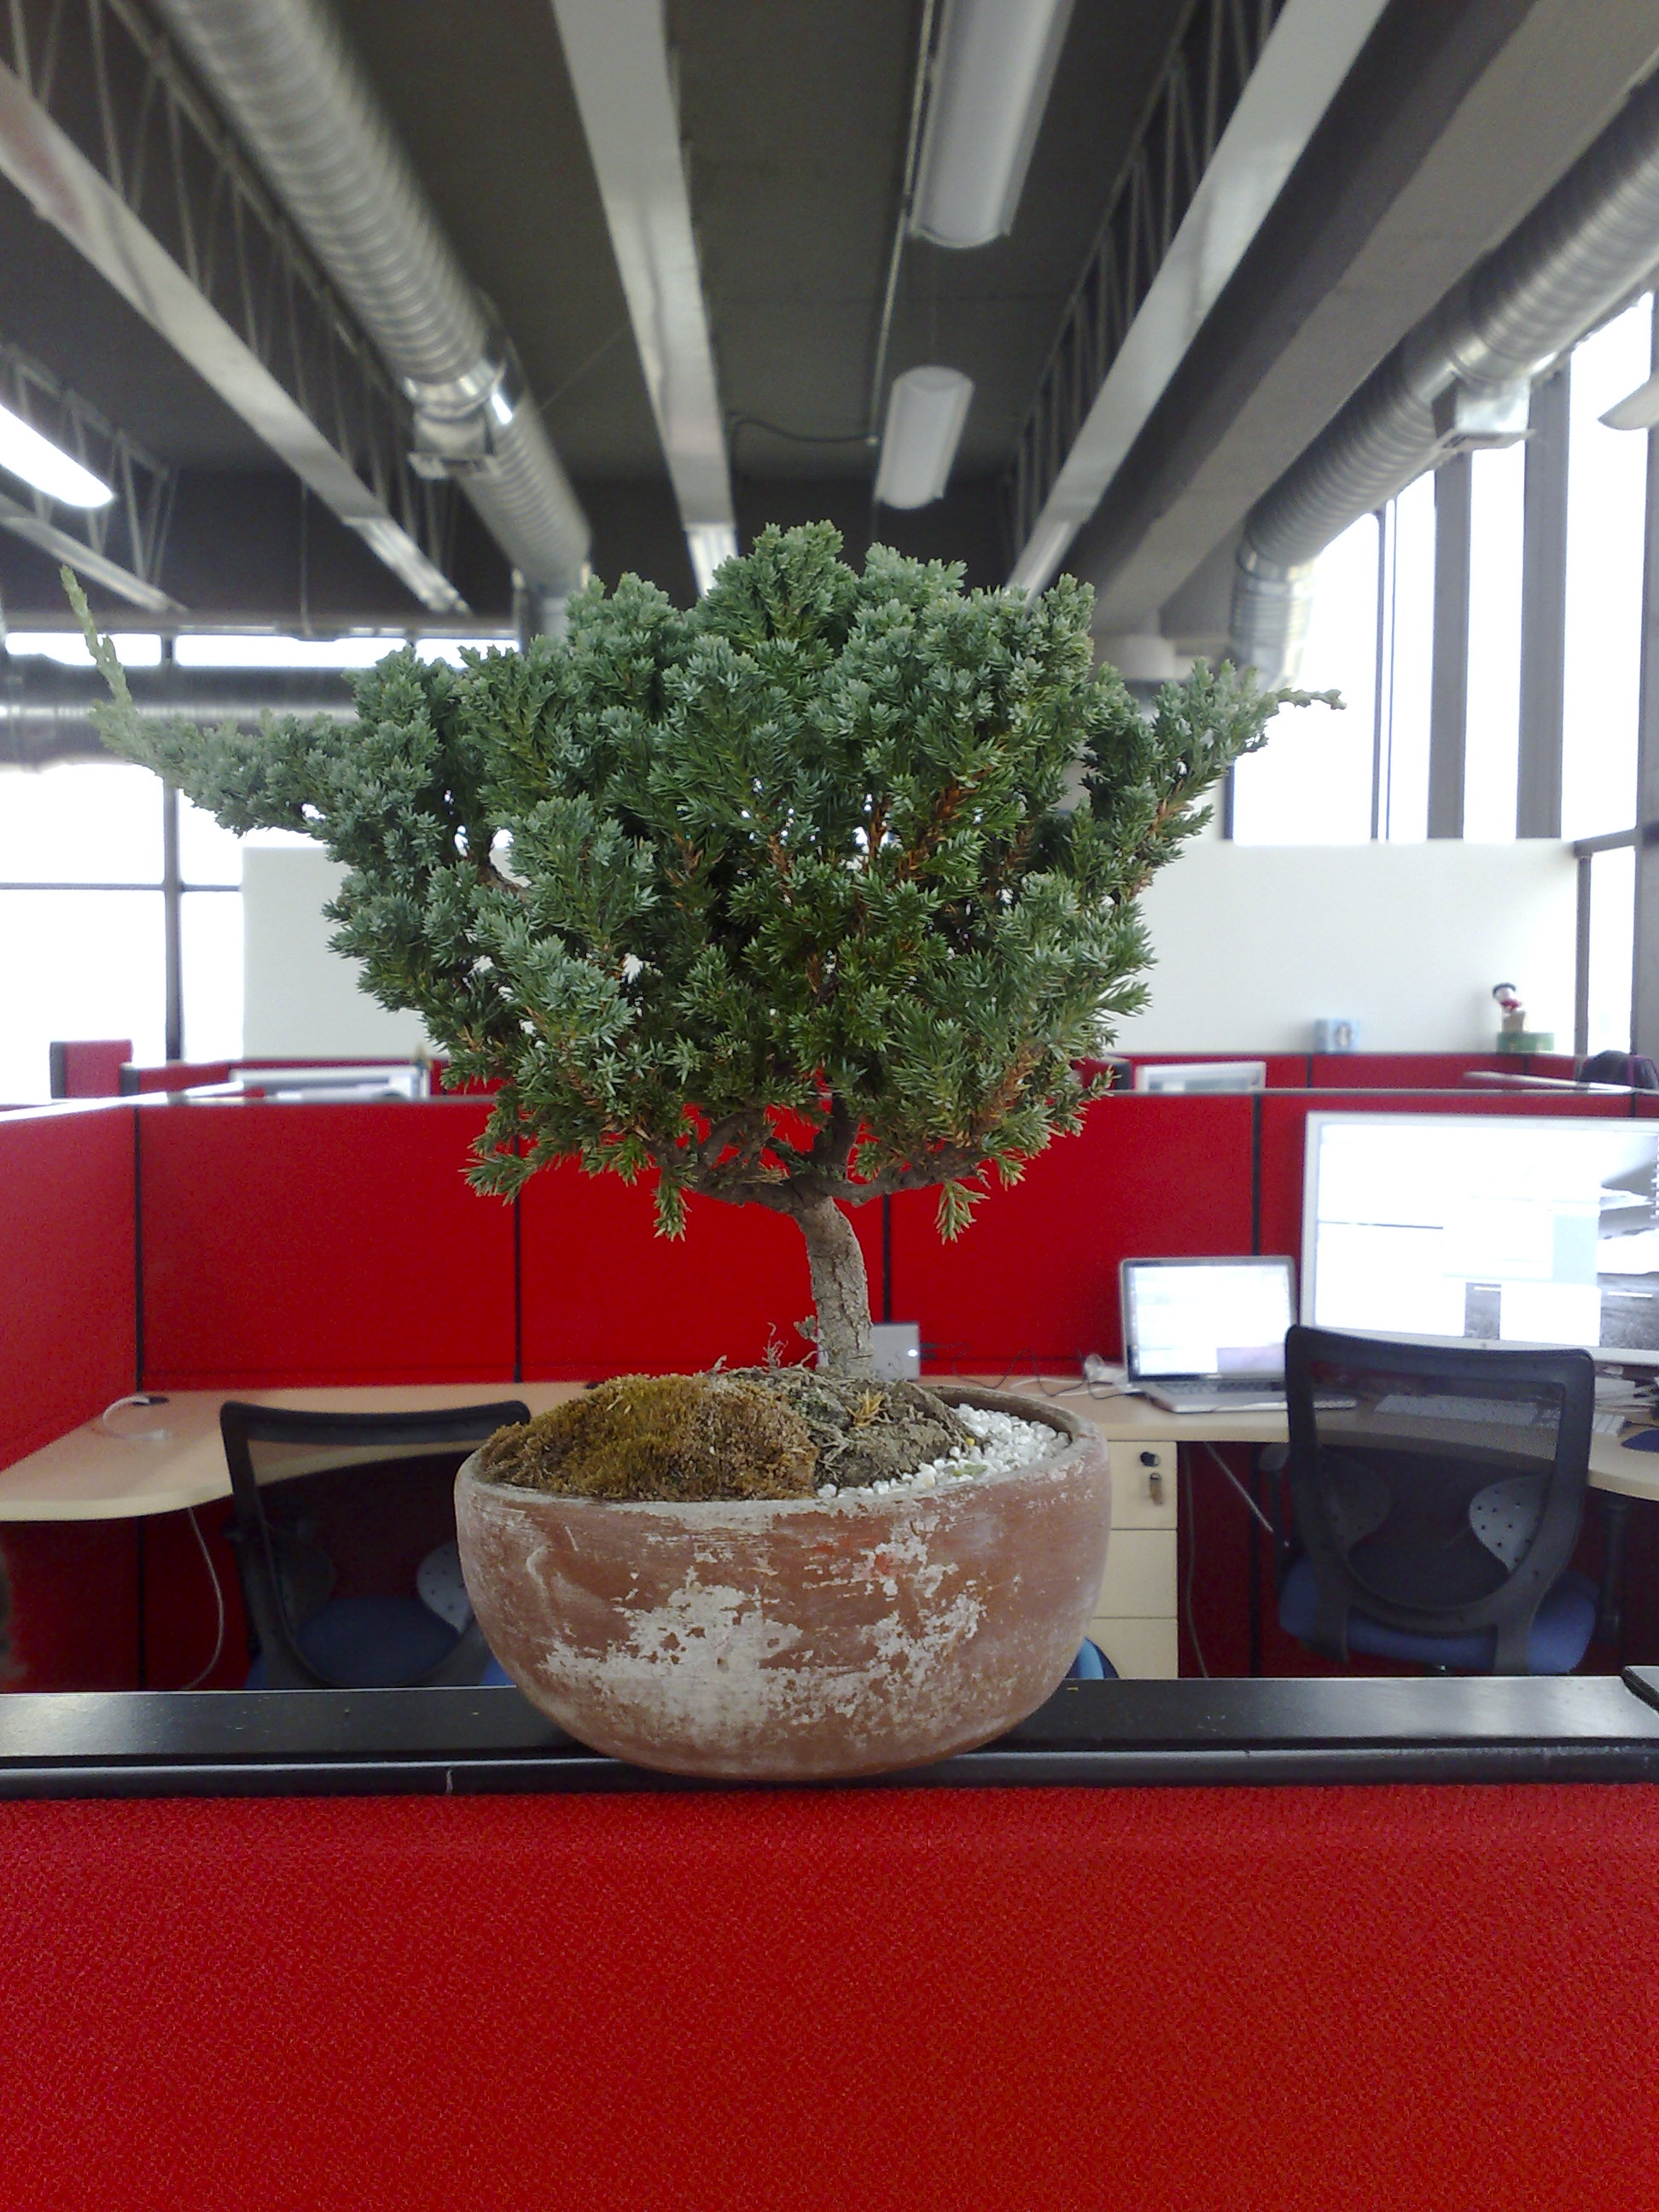 Boost employee productivity by adding live plants to your small office environment